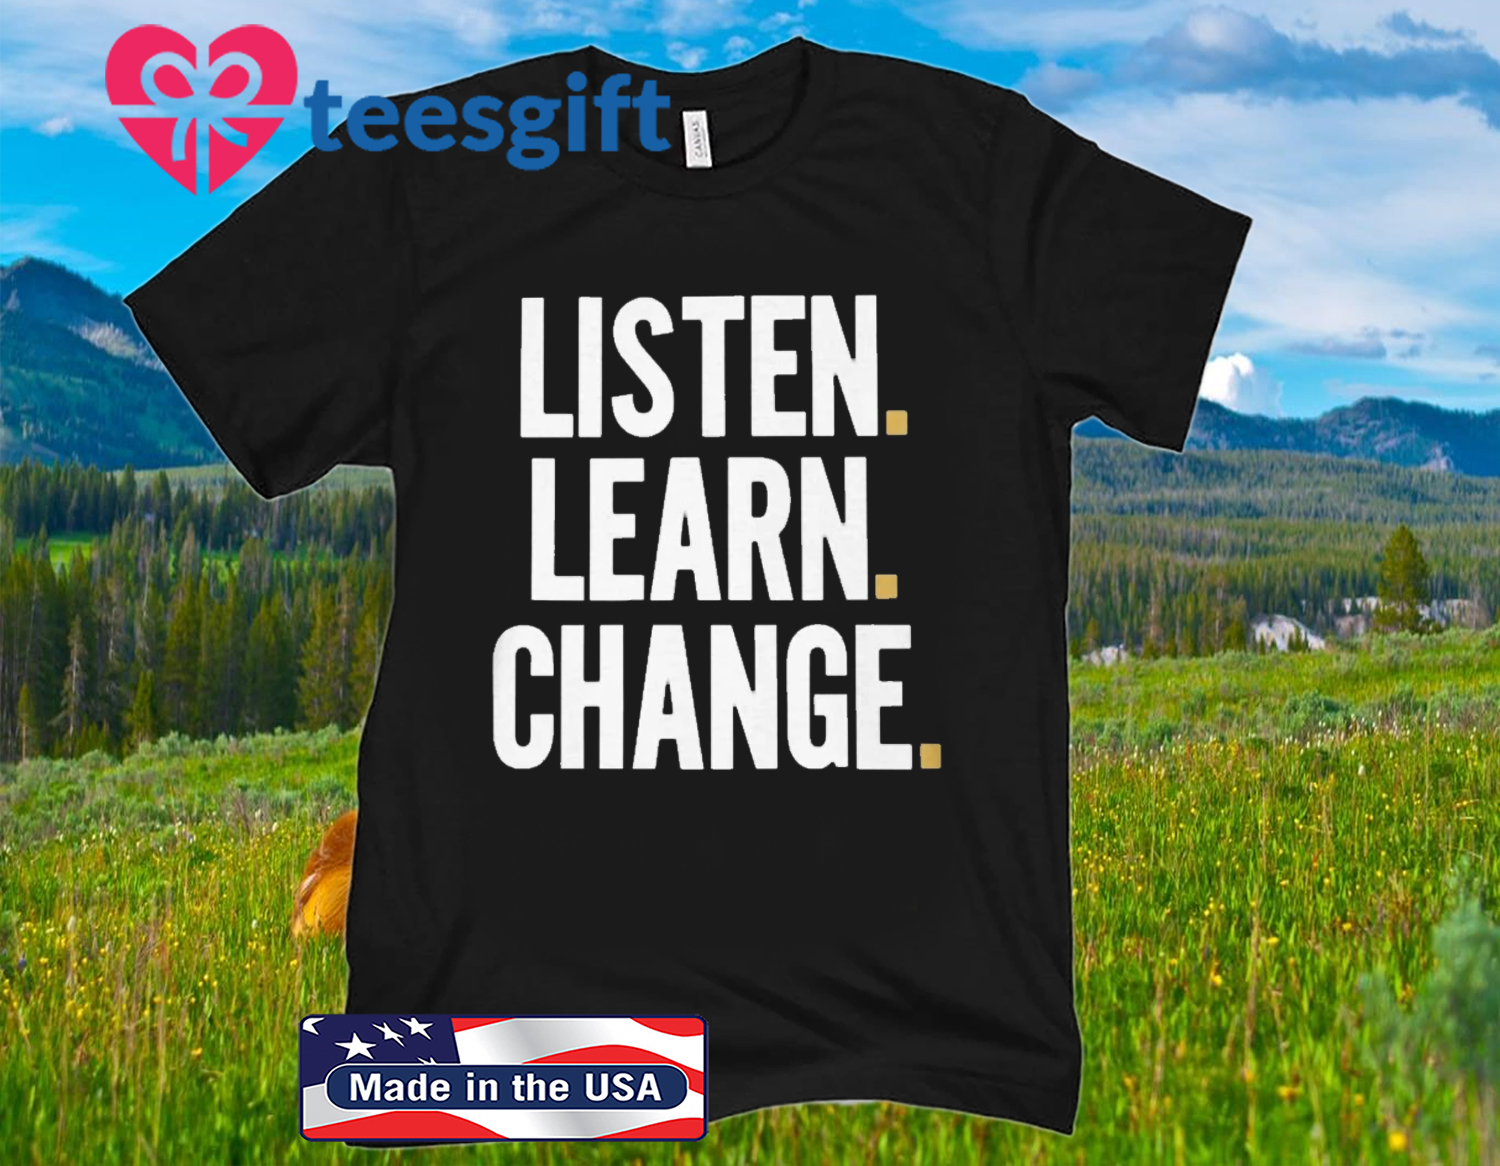 LISTEN - LEARN - CHANGE - 2020 SHIRT